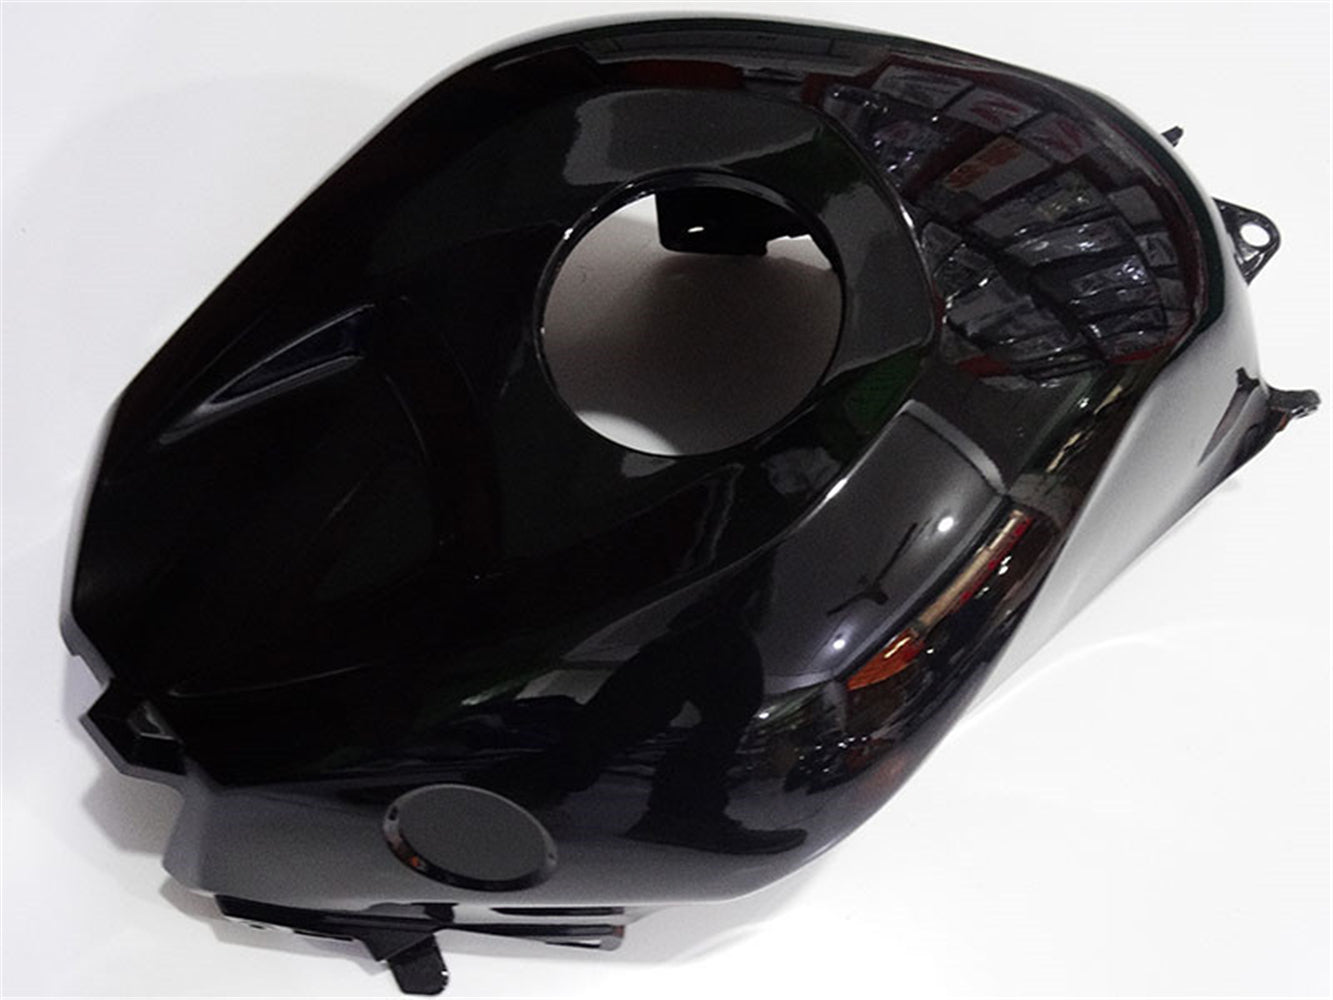 NT Aftermarket Injection ABS Plastic Fairing Fit for CBR600RR 2013-2016 Glossy Black N010